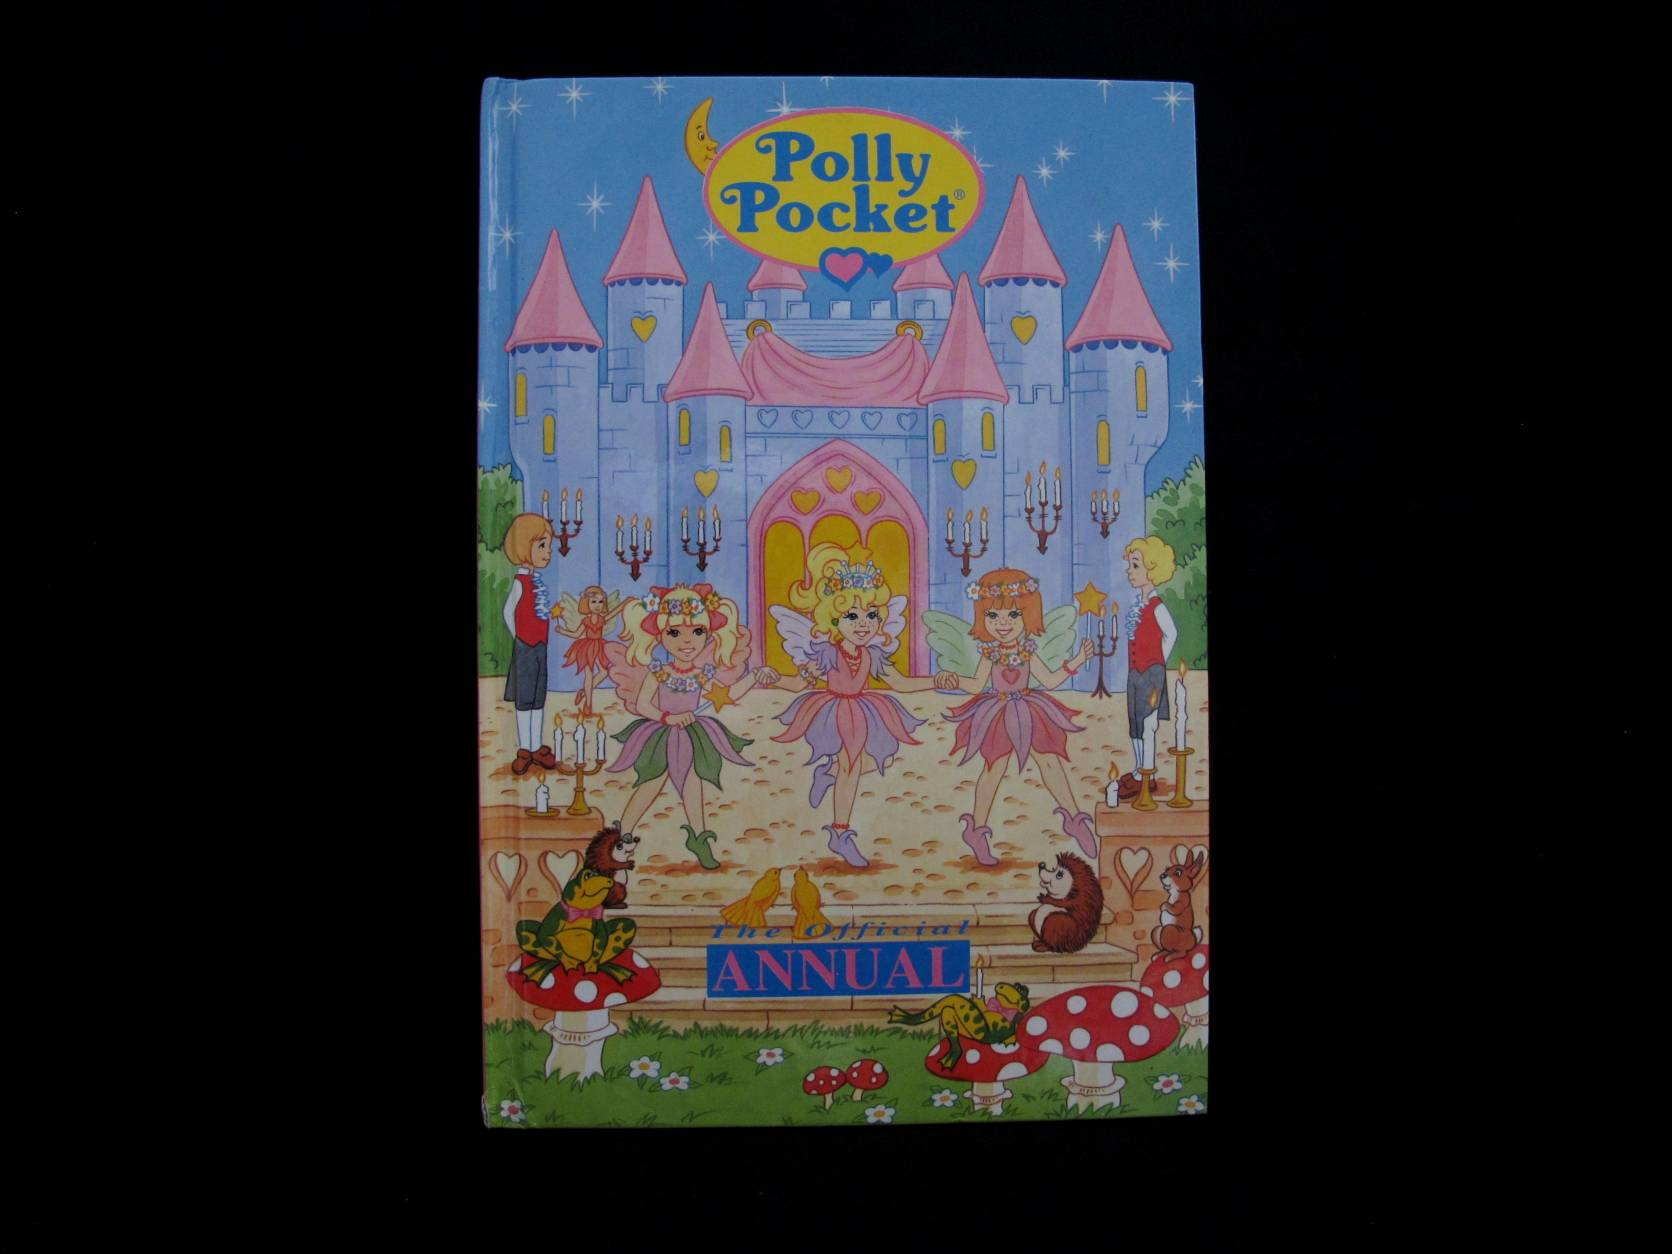 1995 Polly Pocket Annual (1)